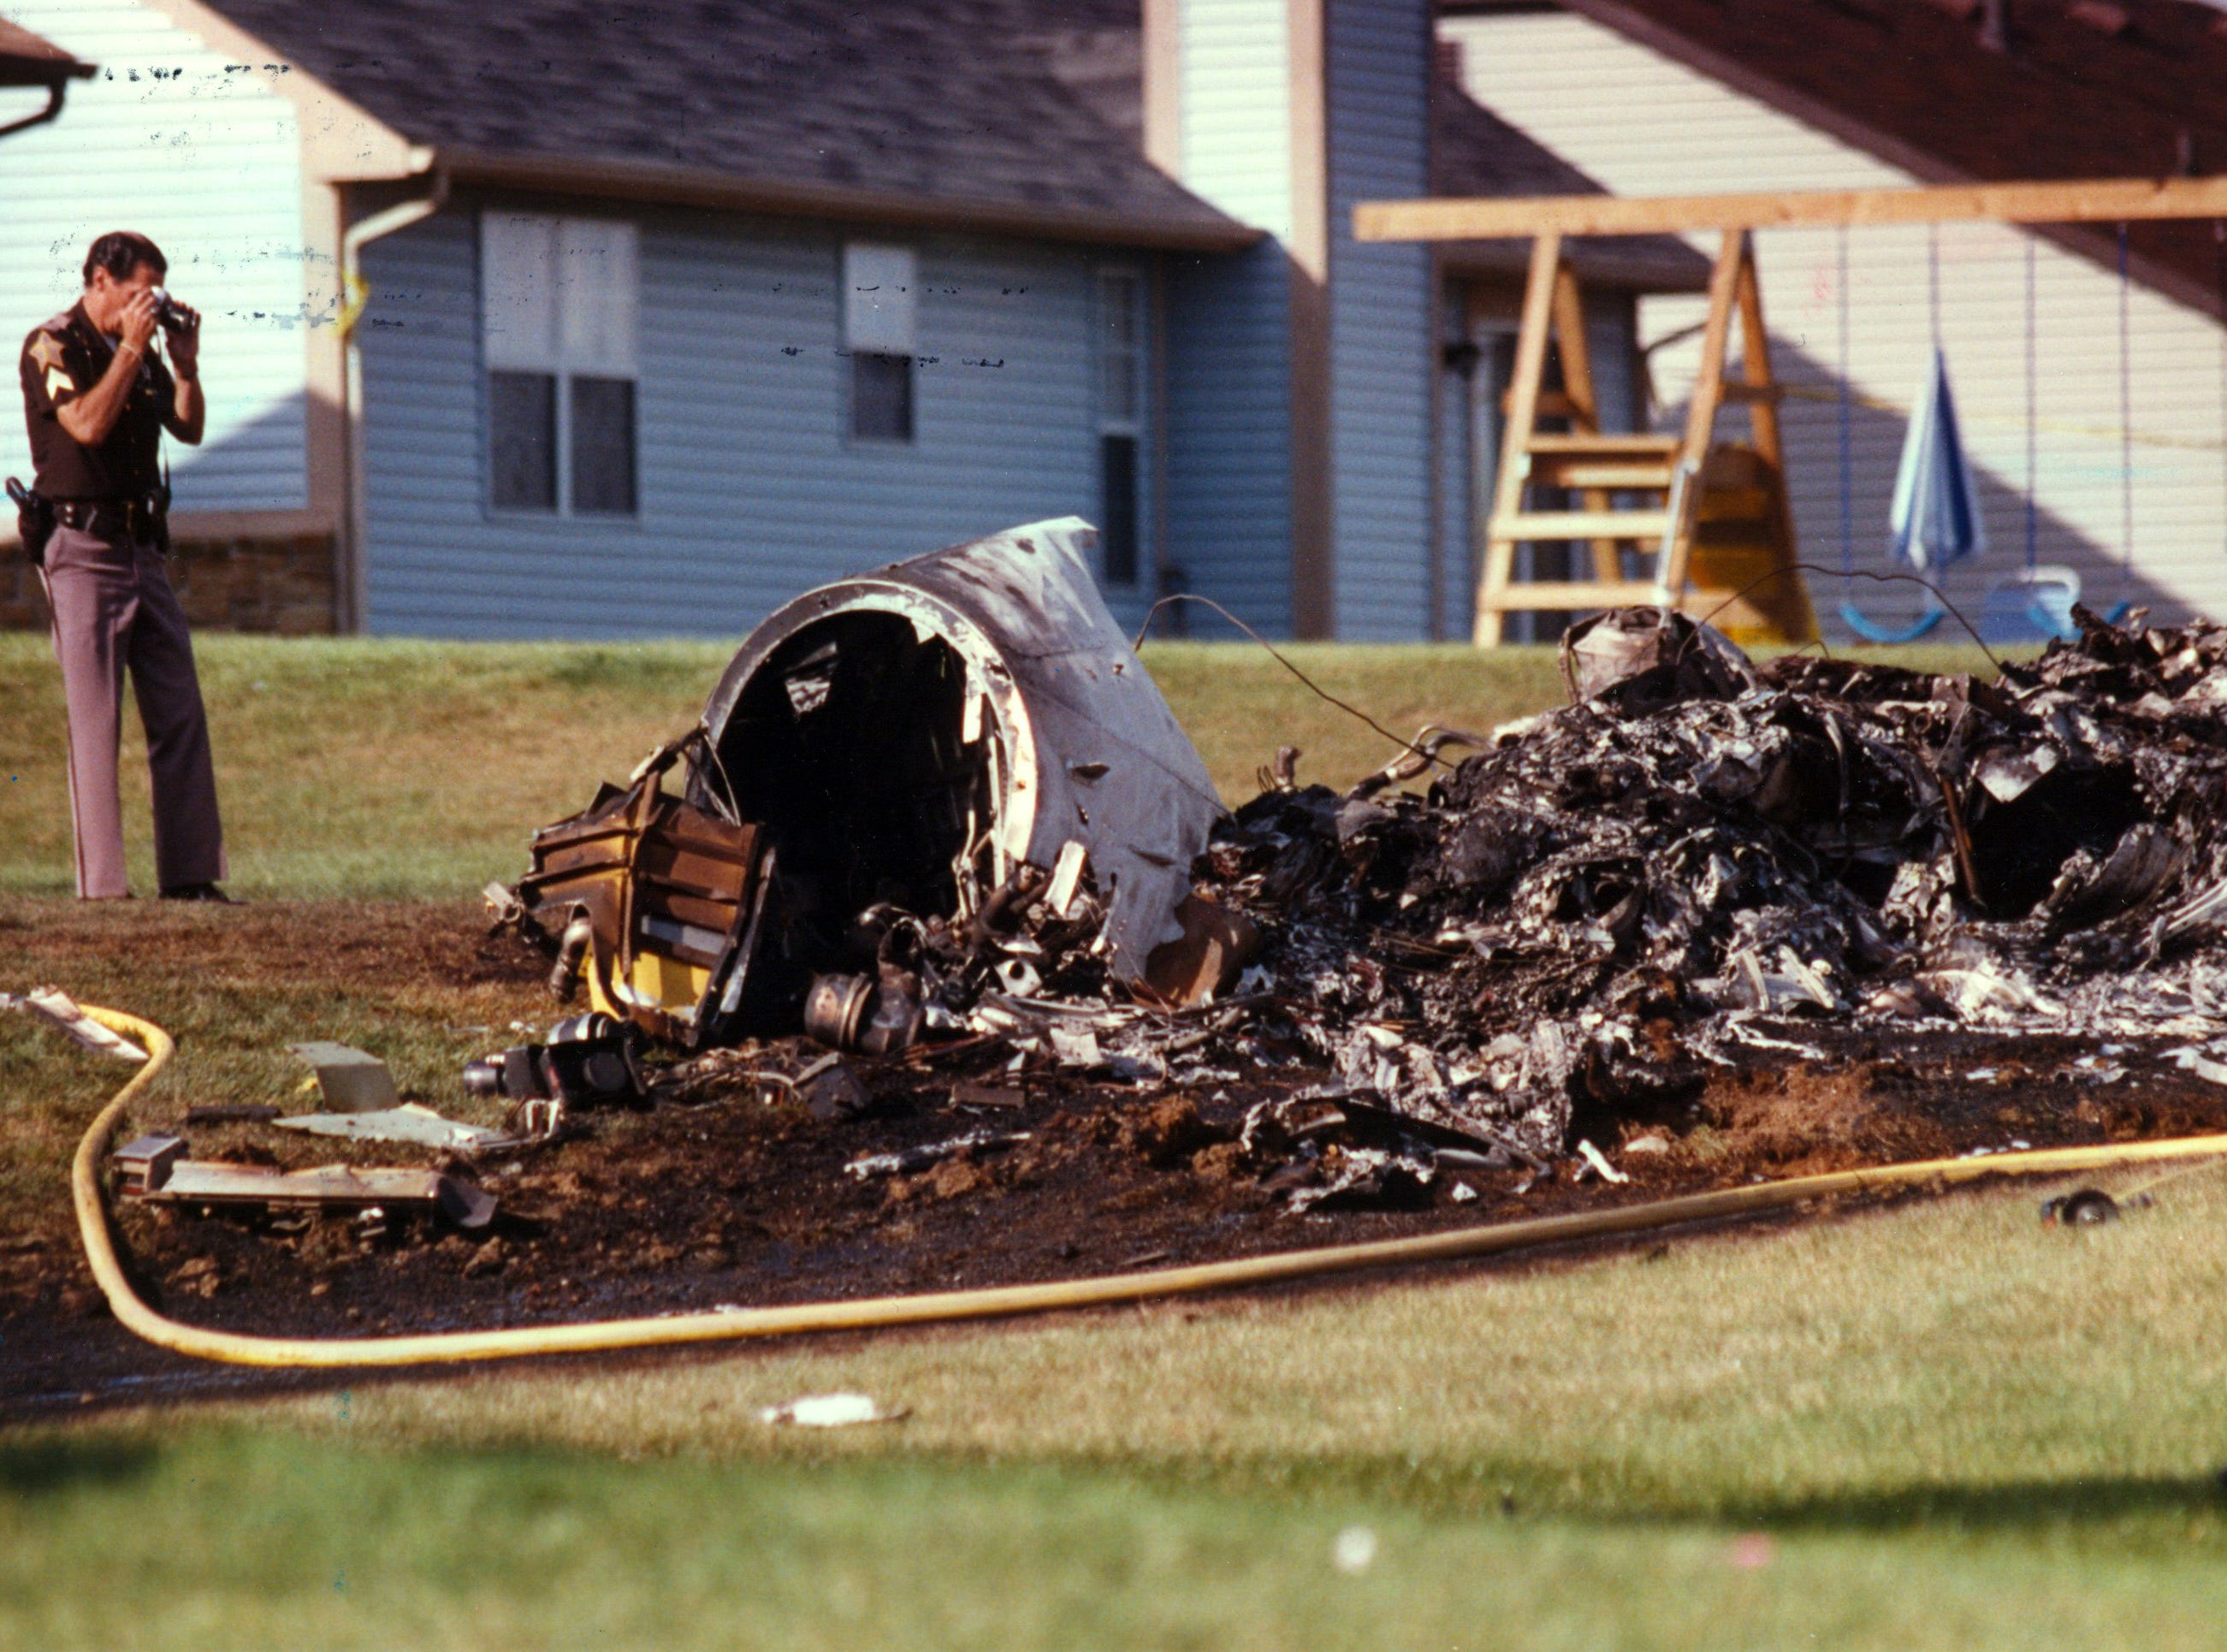 Two small planes to collide in flight, killing six people. Both planes crashed into a southside housing edition on Sept. 11, 1992. The dead from the twin-engine aircraft included the pilot, Bill Mullen, 68, of Huntingburg; Michael Carroll, 51, a former deputy mayor of Indianapolis and a special assistant to Sen. Lugar; banking executive Frank McKinney Jr., 53; Robert V. Welch, 64, developer and executive director of the White River State Park Development Commission; and former Indiana lottery director John Weliever, 50.